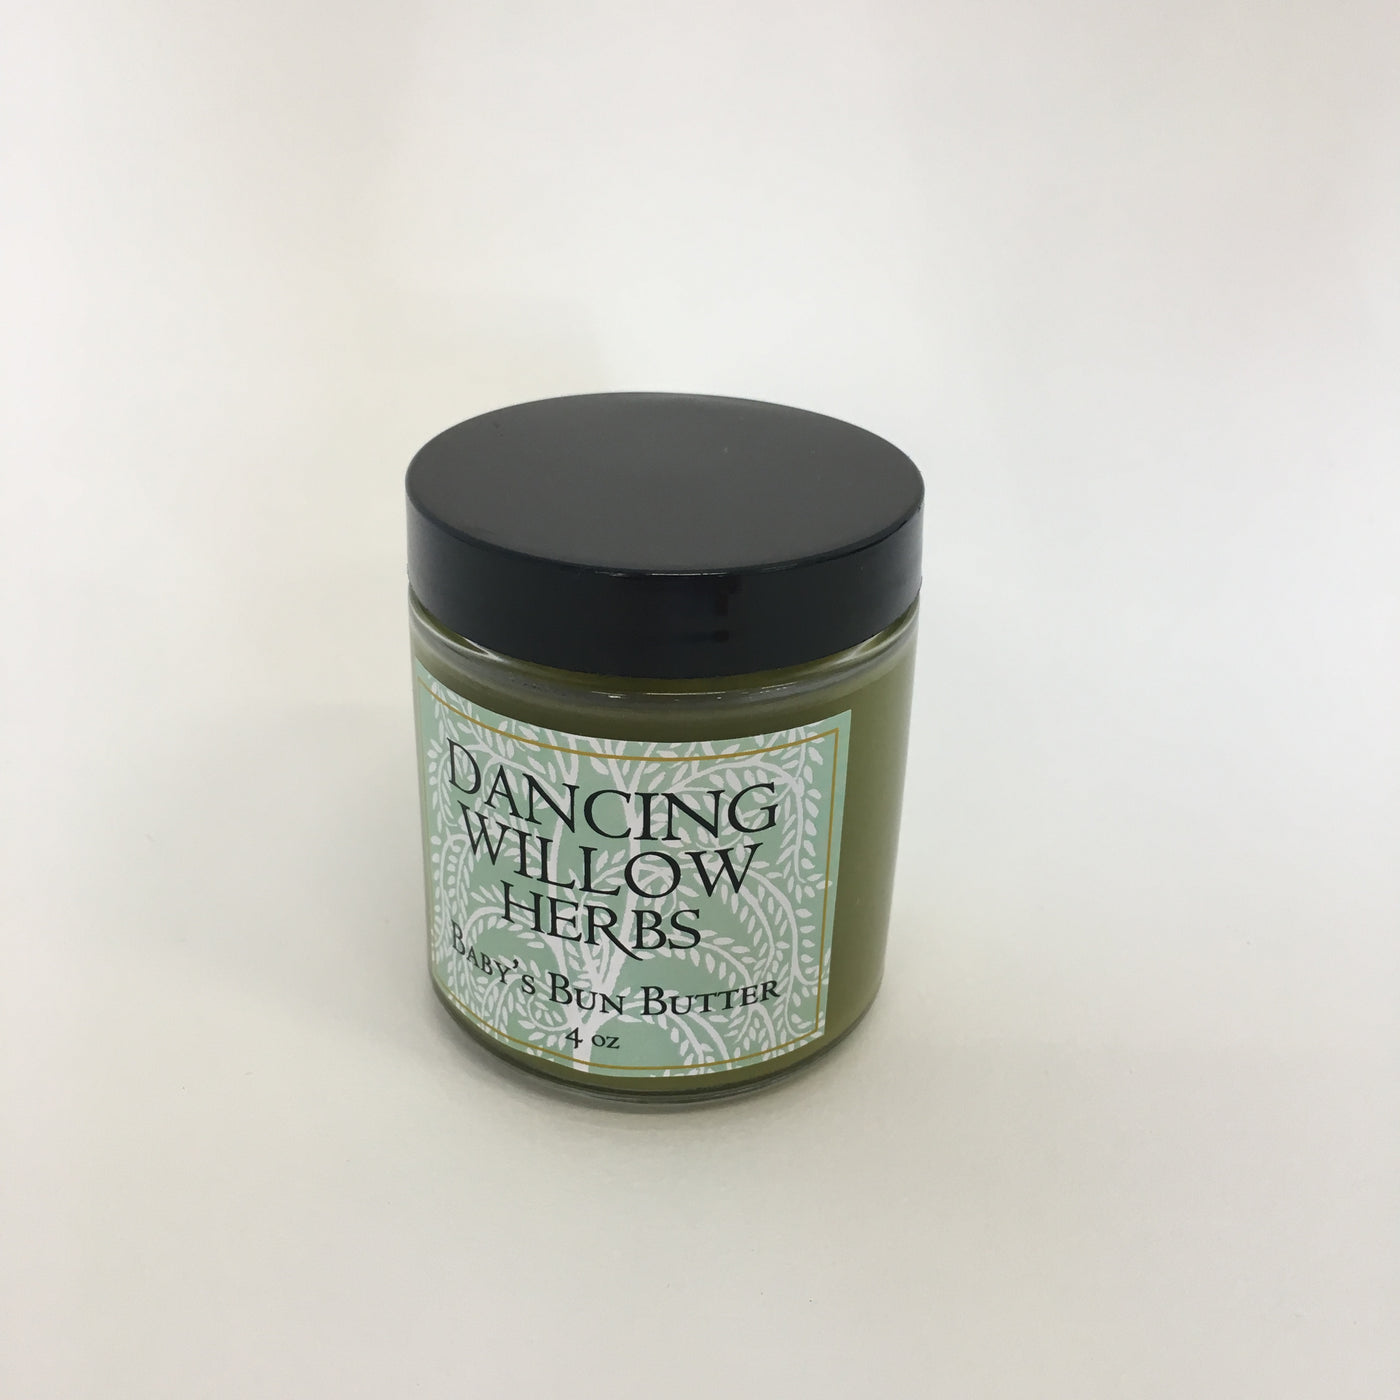 Baby's Bun Butter - Dancing Willow Herbs baby bun butter - herbal formulas